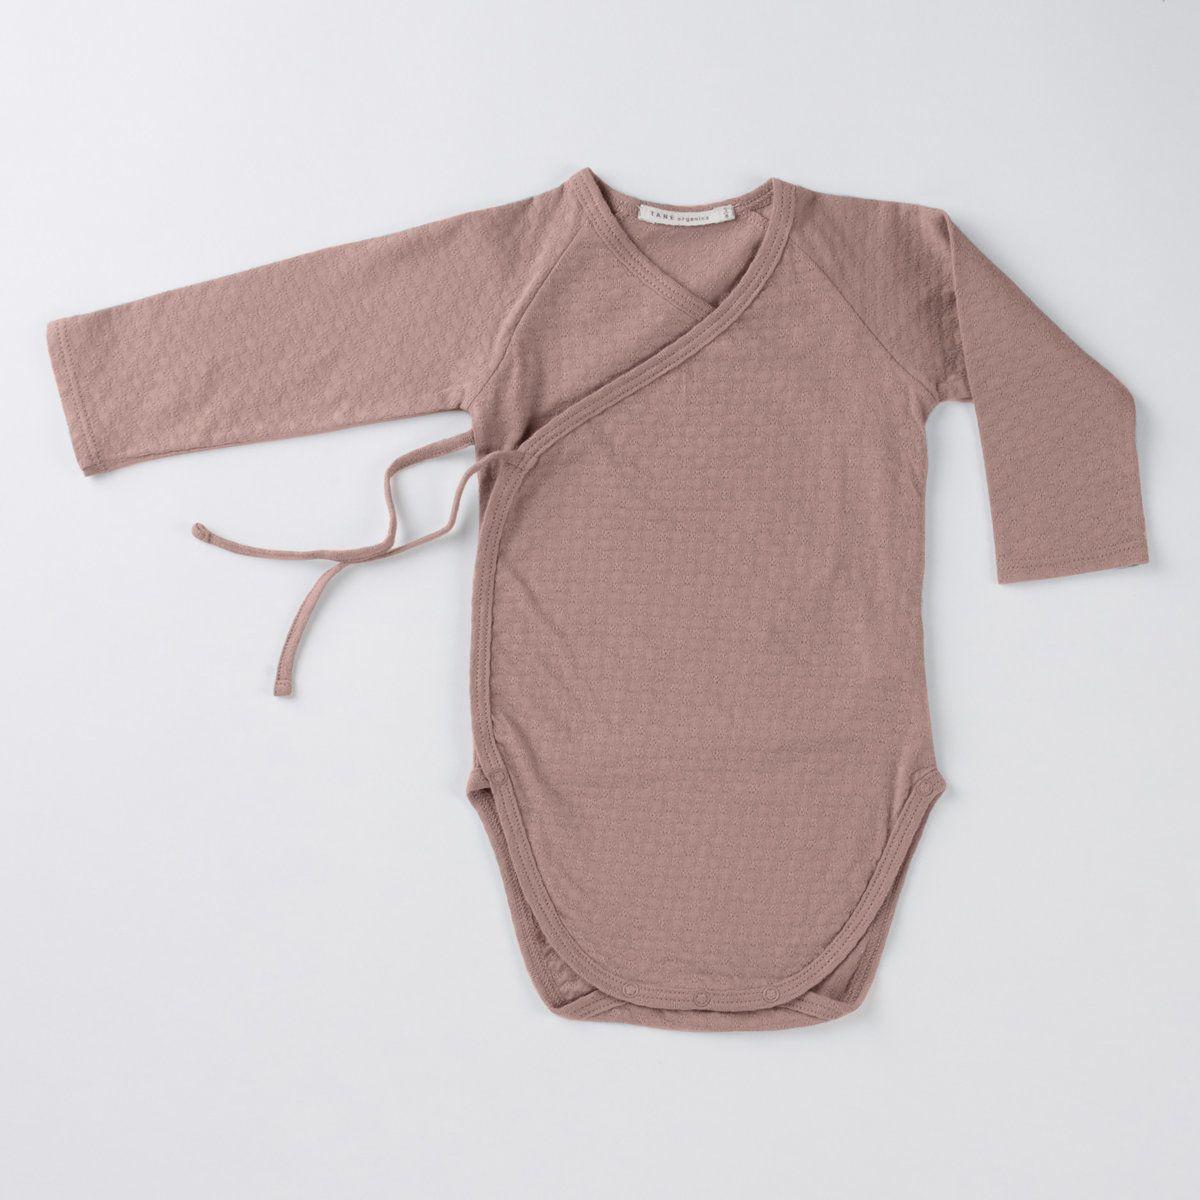 Luxurious Organic Infant and Baby Clothing: onesies : Pointelle